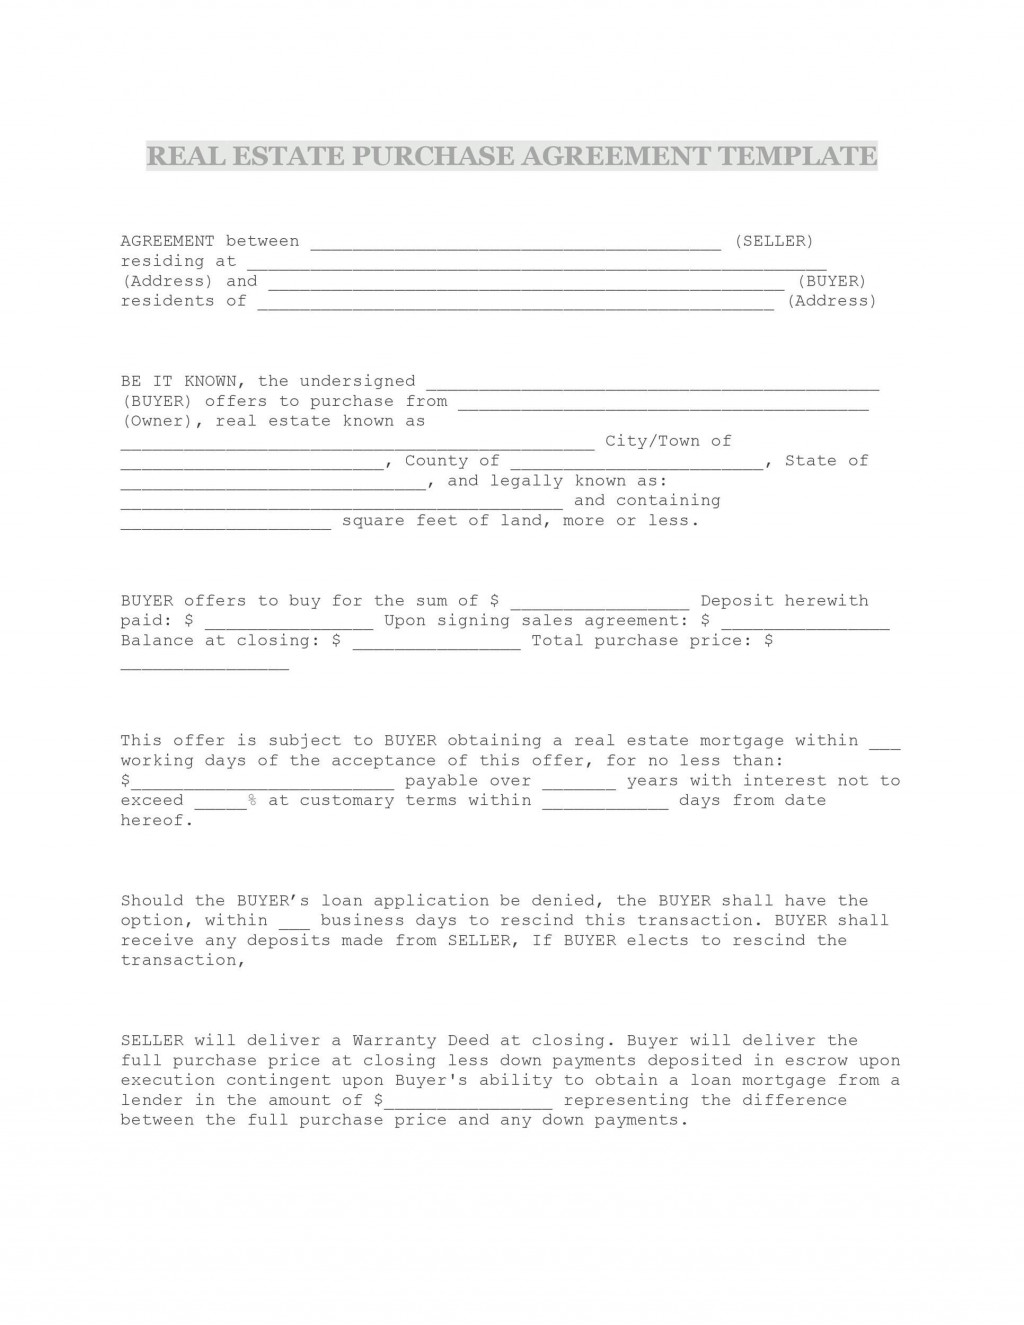 008 Imposing Real Estate Purchase Agreement Template Photo  Contract California Minnesota British ColumbiaLarge